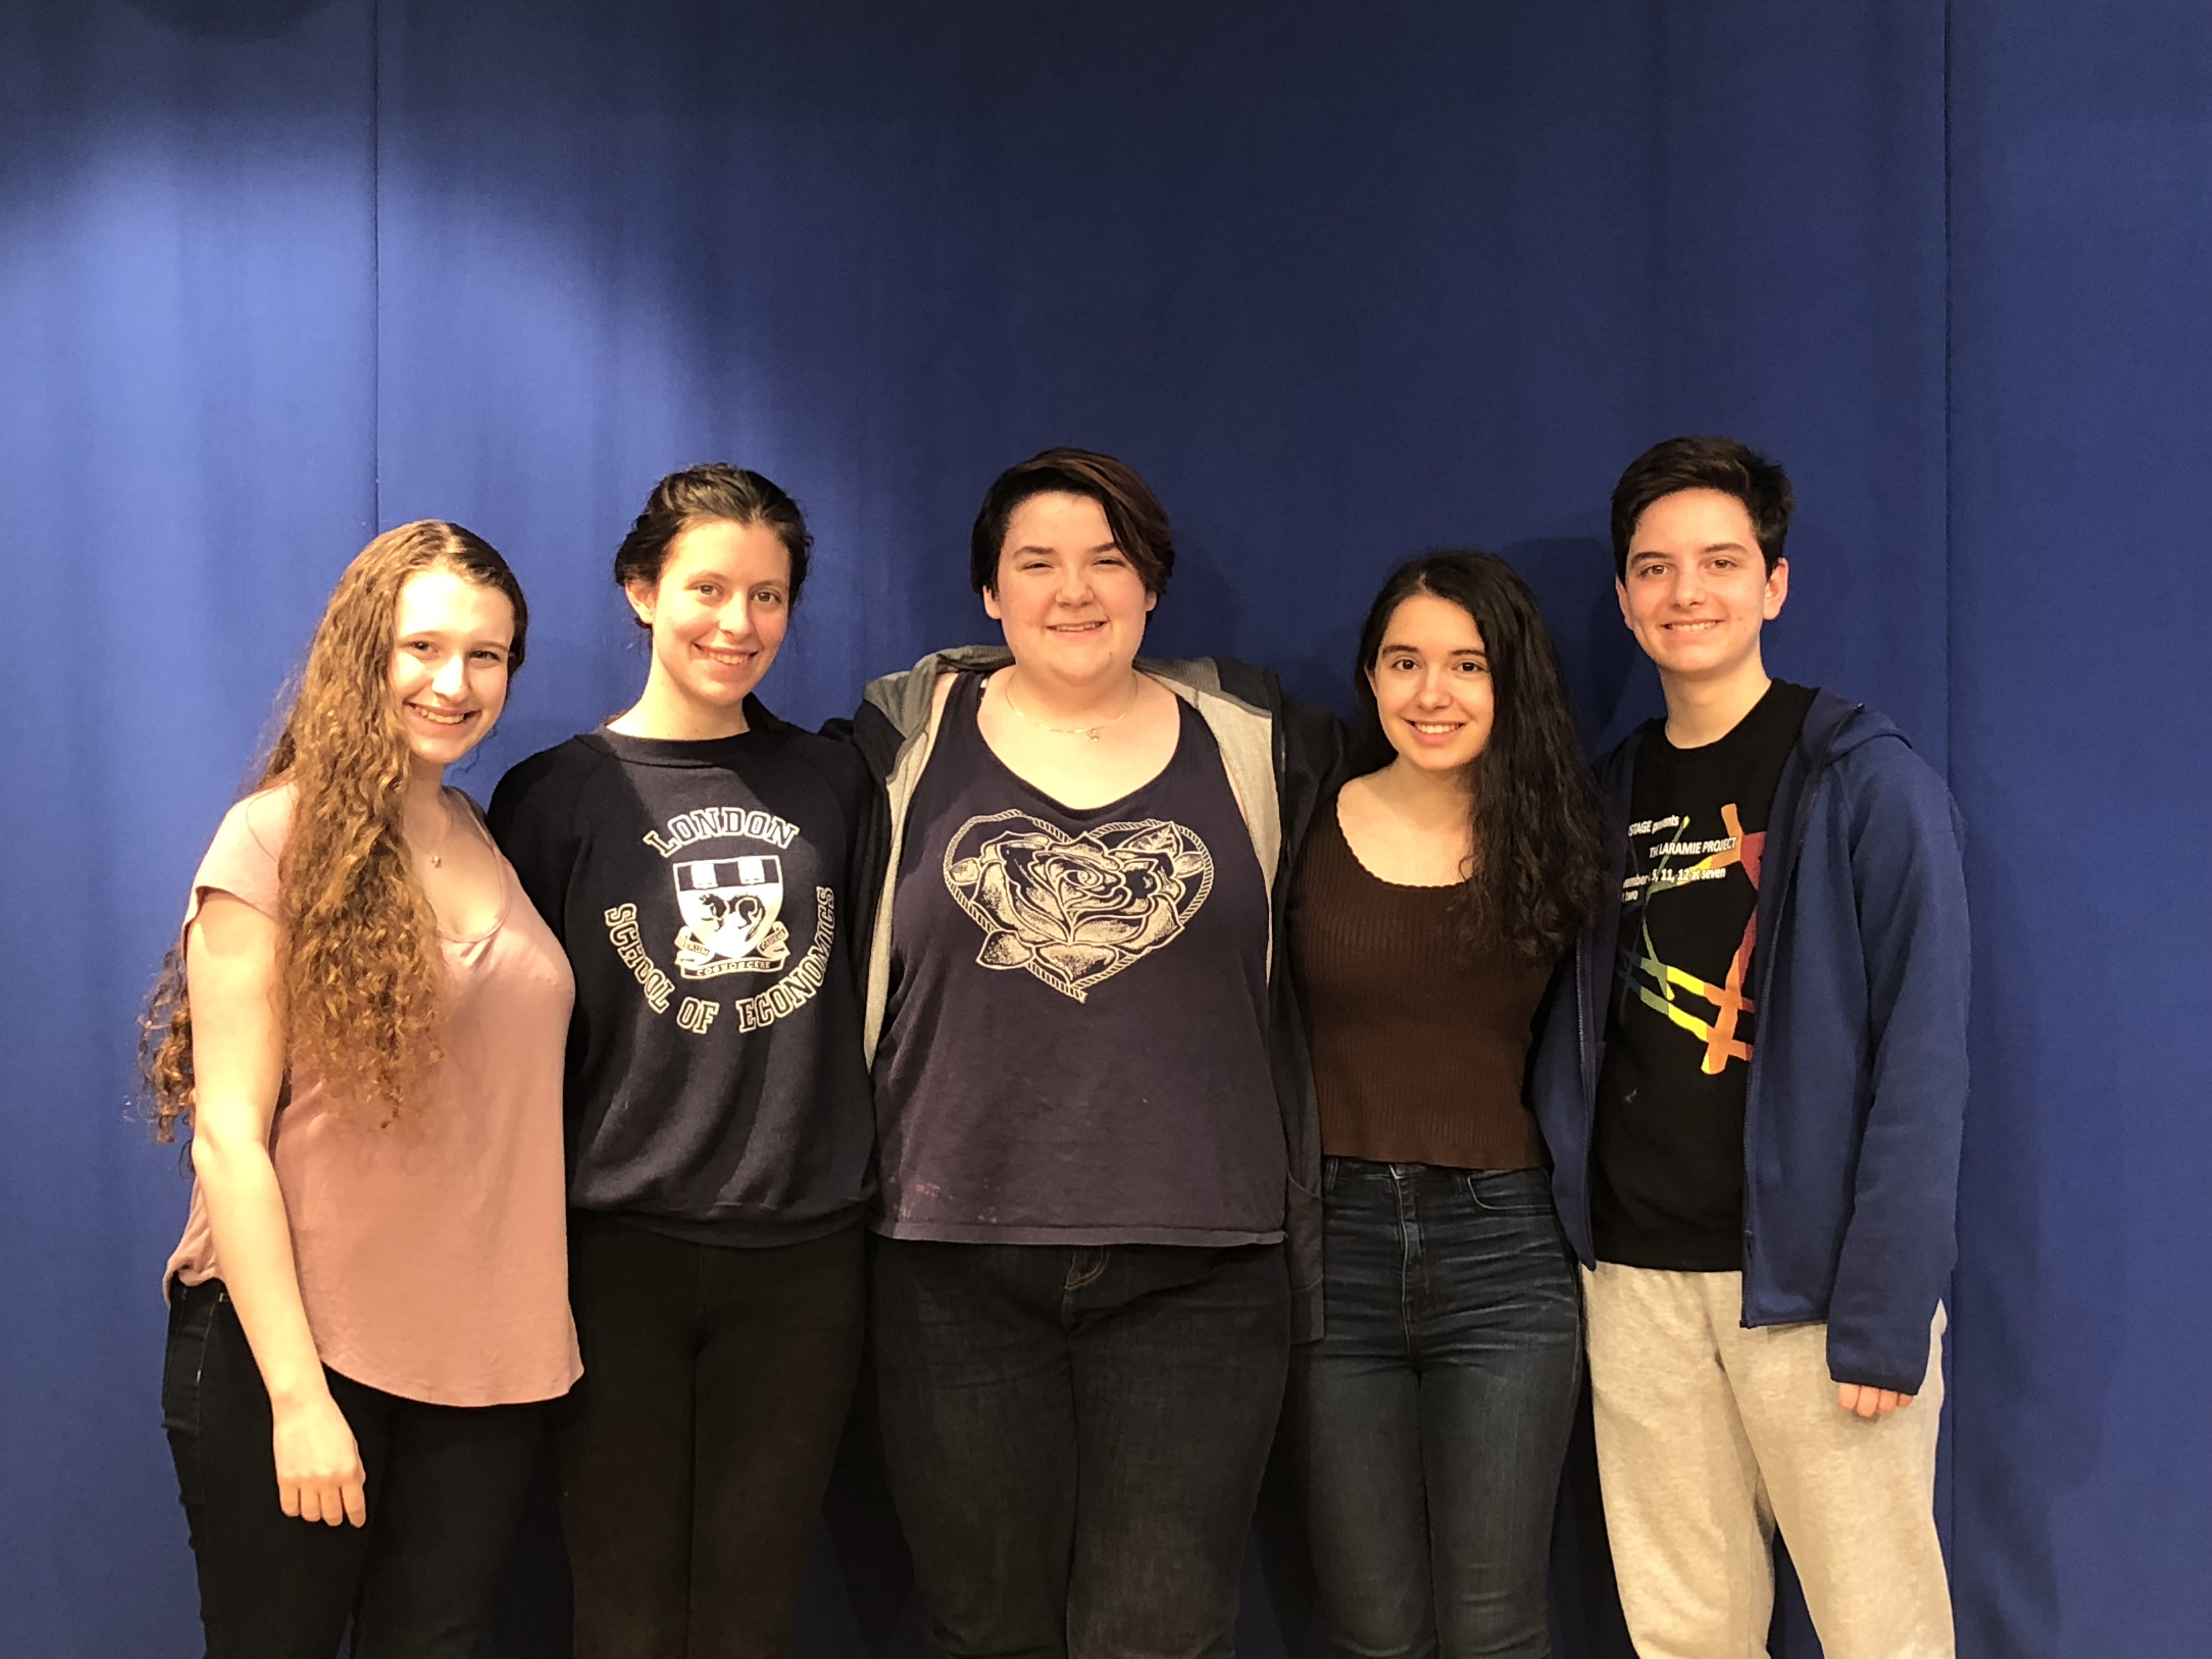 These young activists have organized a home-sharing network in Maryland to help their out-of-town peers find places to stay during the March For Our Lives demonstration in Washington, D.C. on March 24, 2018. From left to right: Michaela Hoenig, Kate Lebrun, Mai Canning, Gabrielle Zwi and Emiliano Calvo Alcaniz